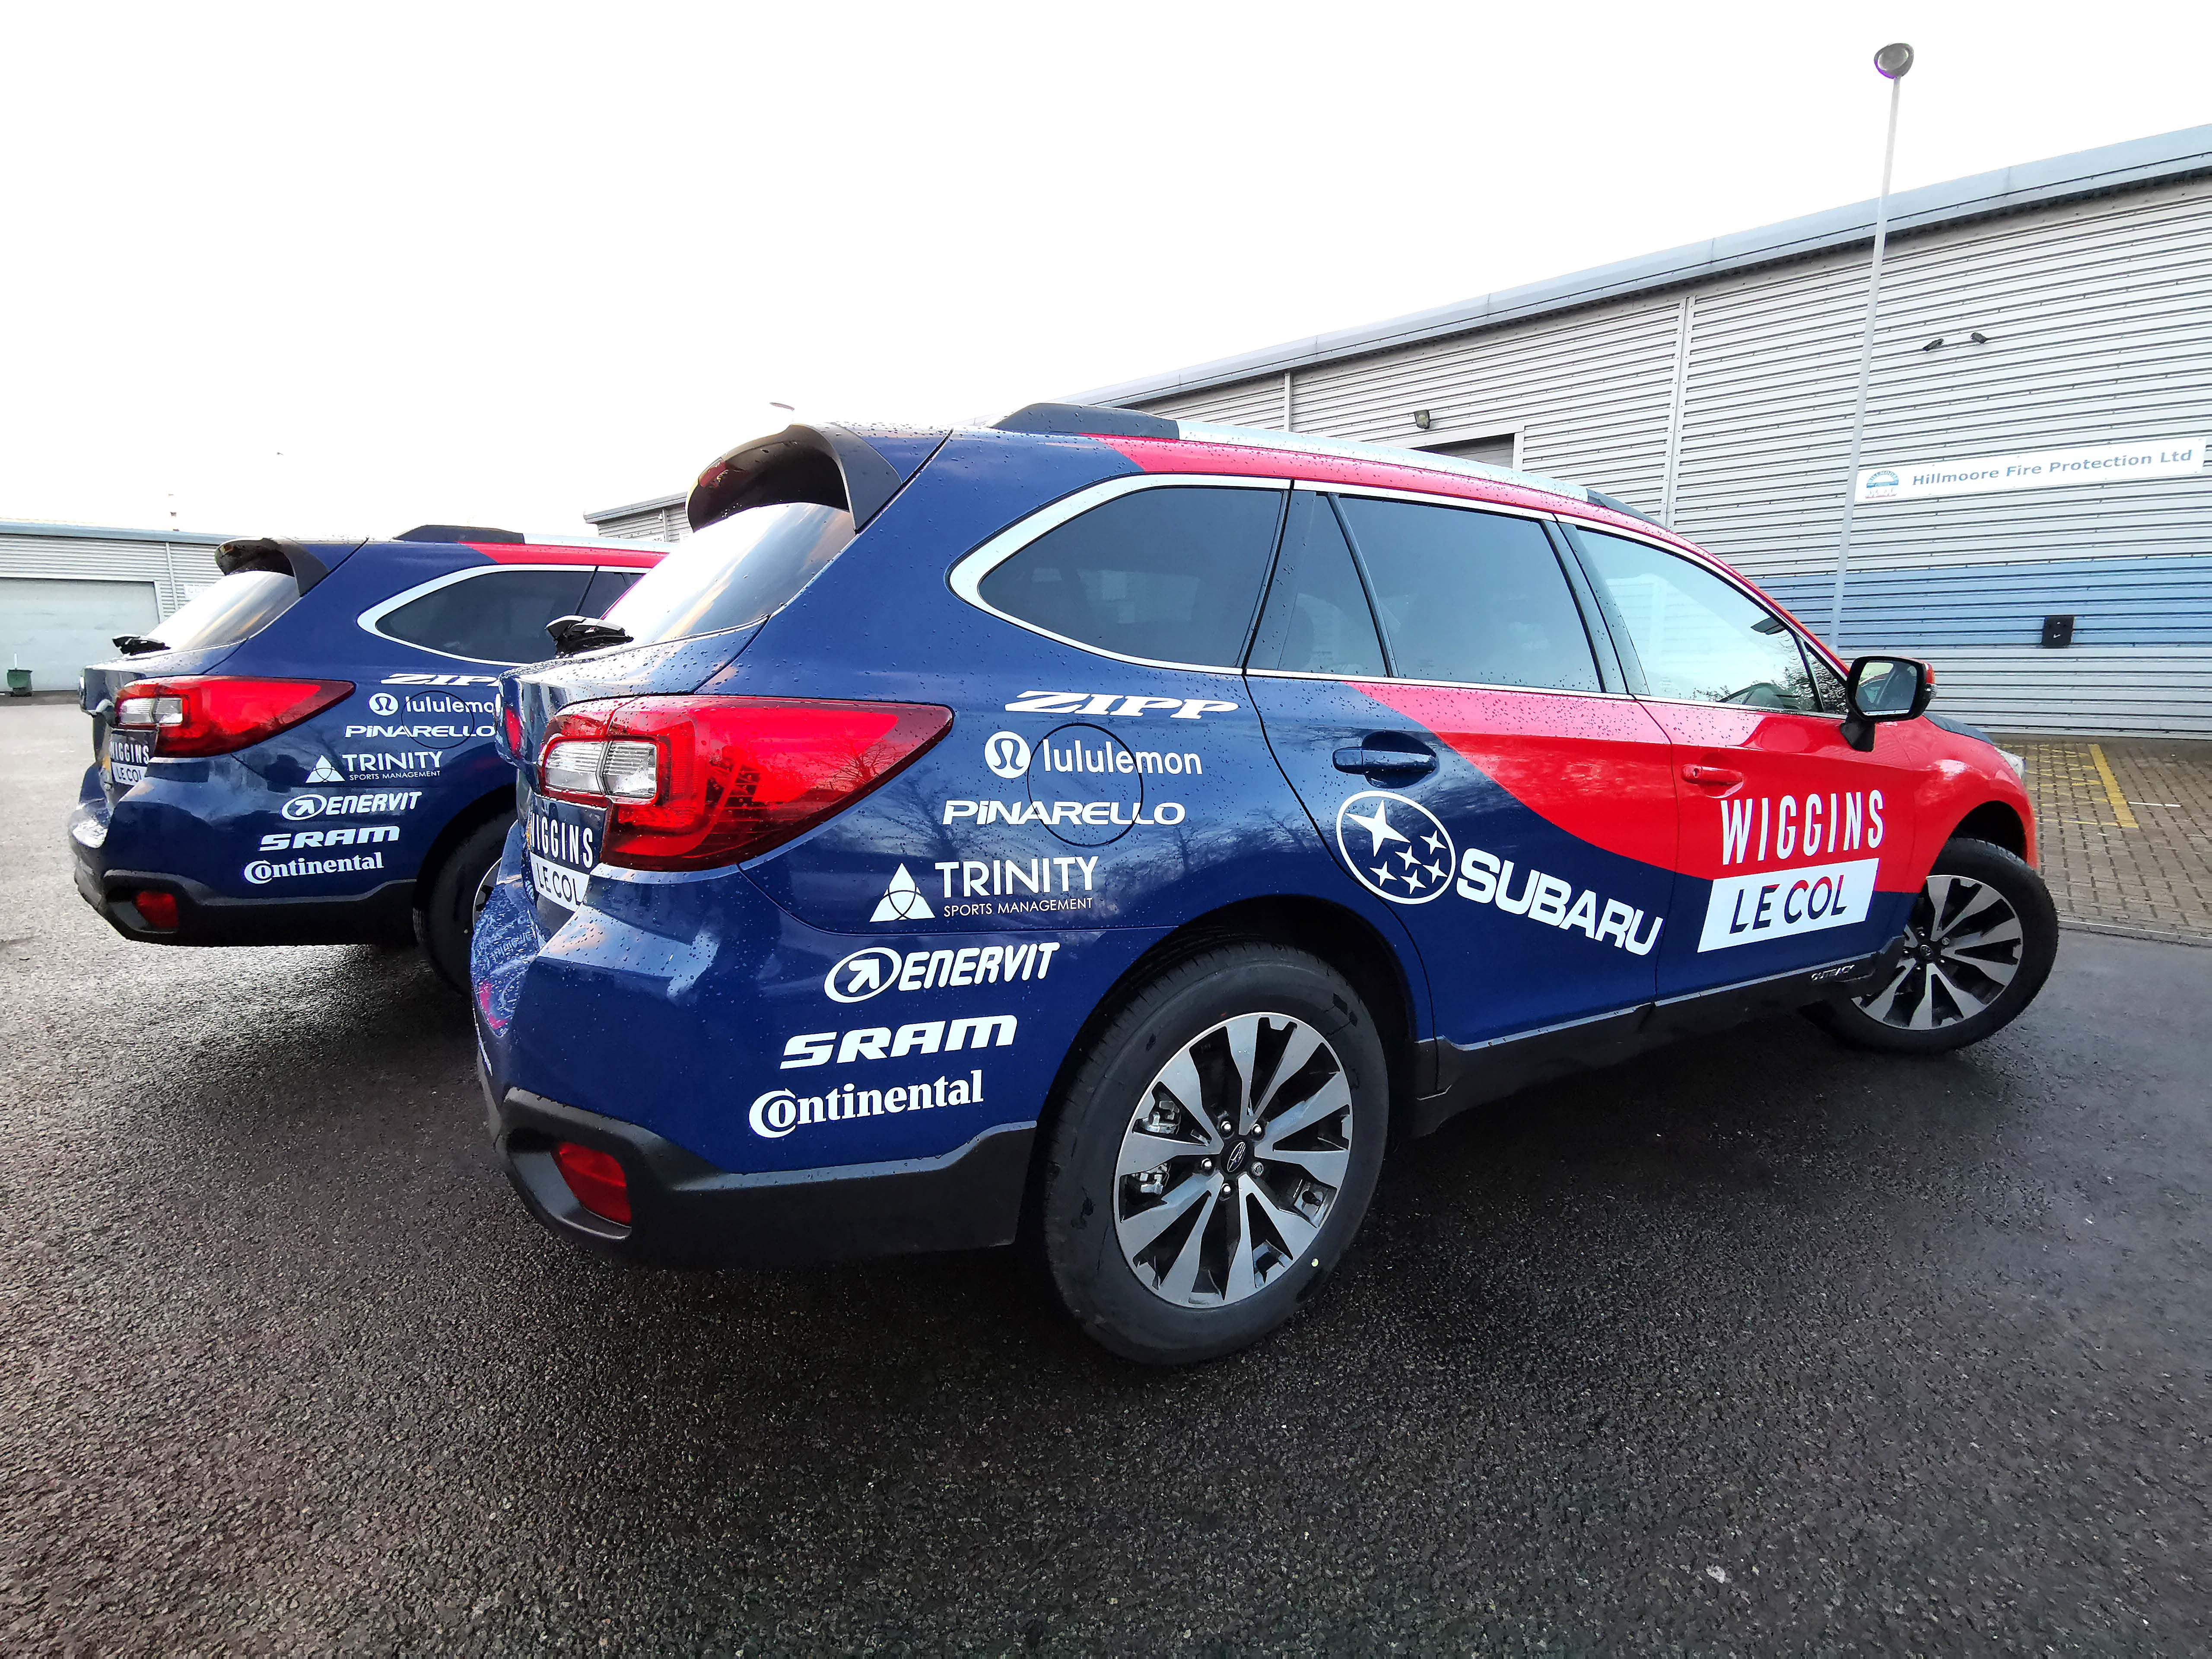 We Just Completed A Full Car Wraps On X 4 Subaru Outback For The Wiggins Lecol Cycling Team Get A Bespoke Vehicle Wrap Quote Car Wrap Car Car Vinyl Graphics